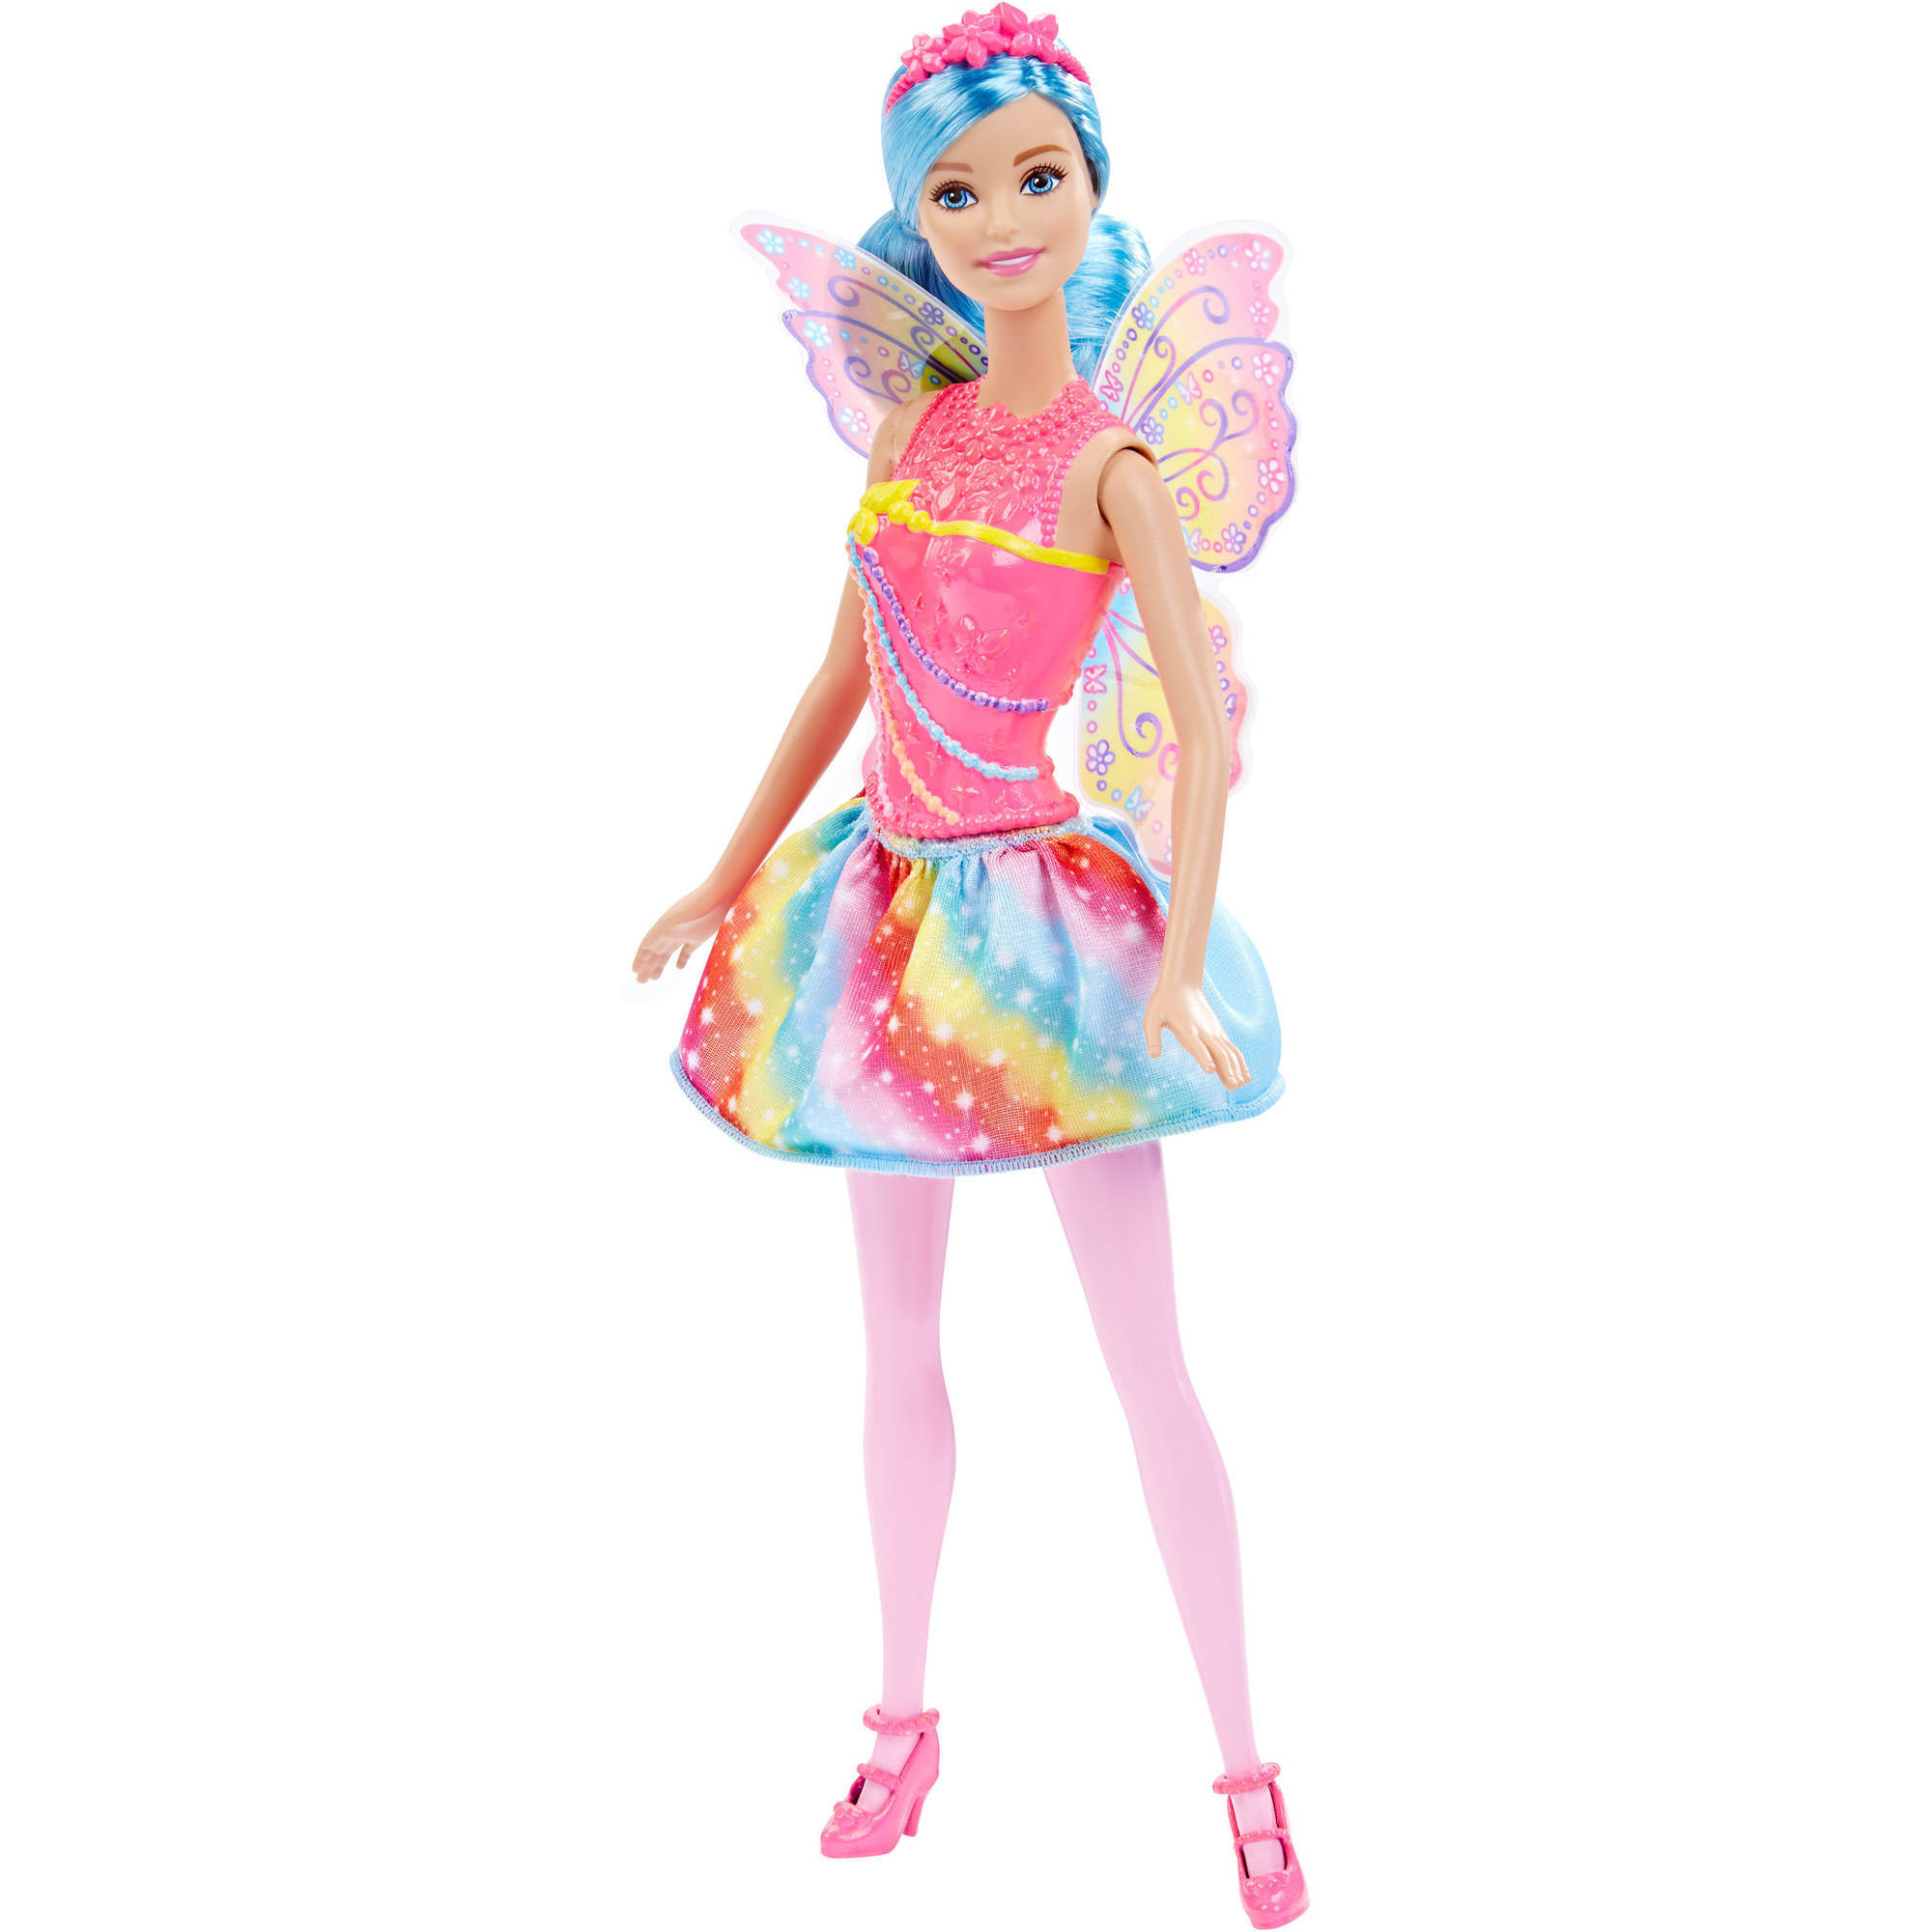 Barbie Fairy Rainbow Fashion Doll by Mattel